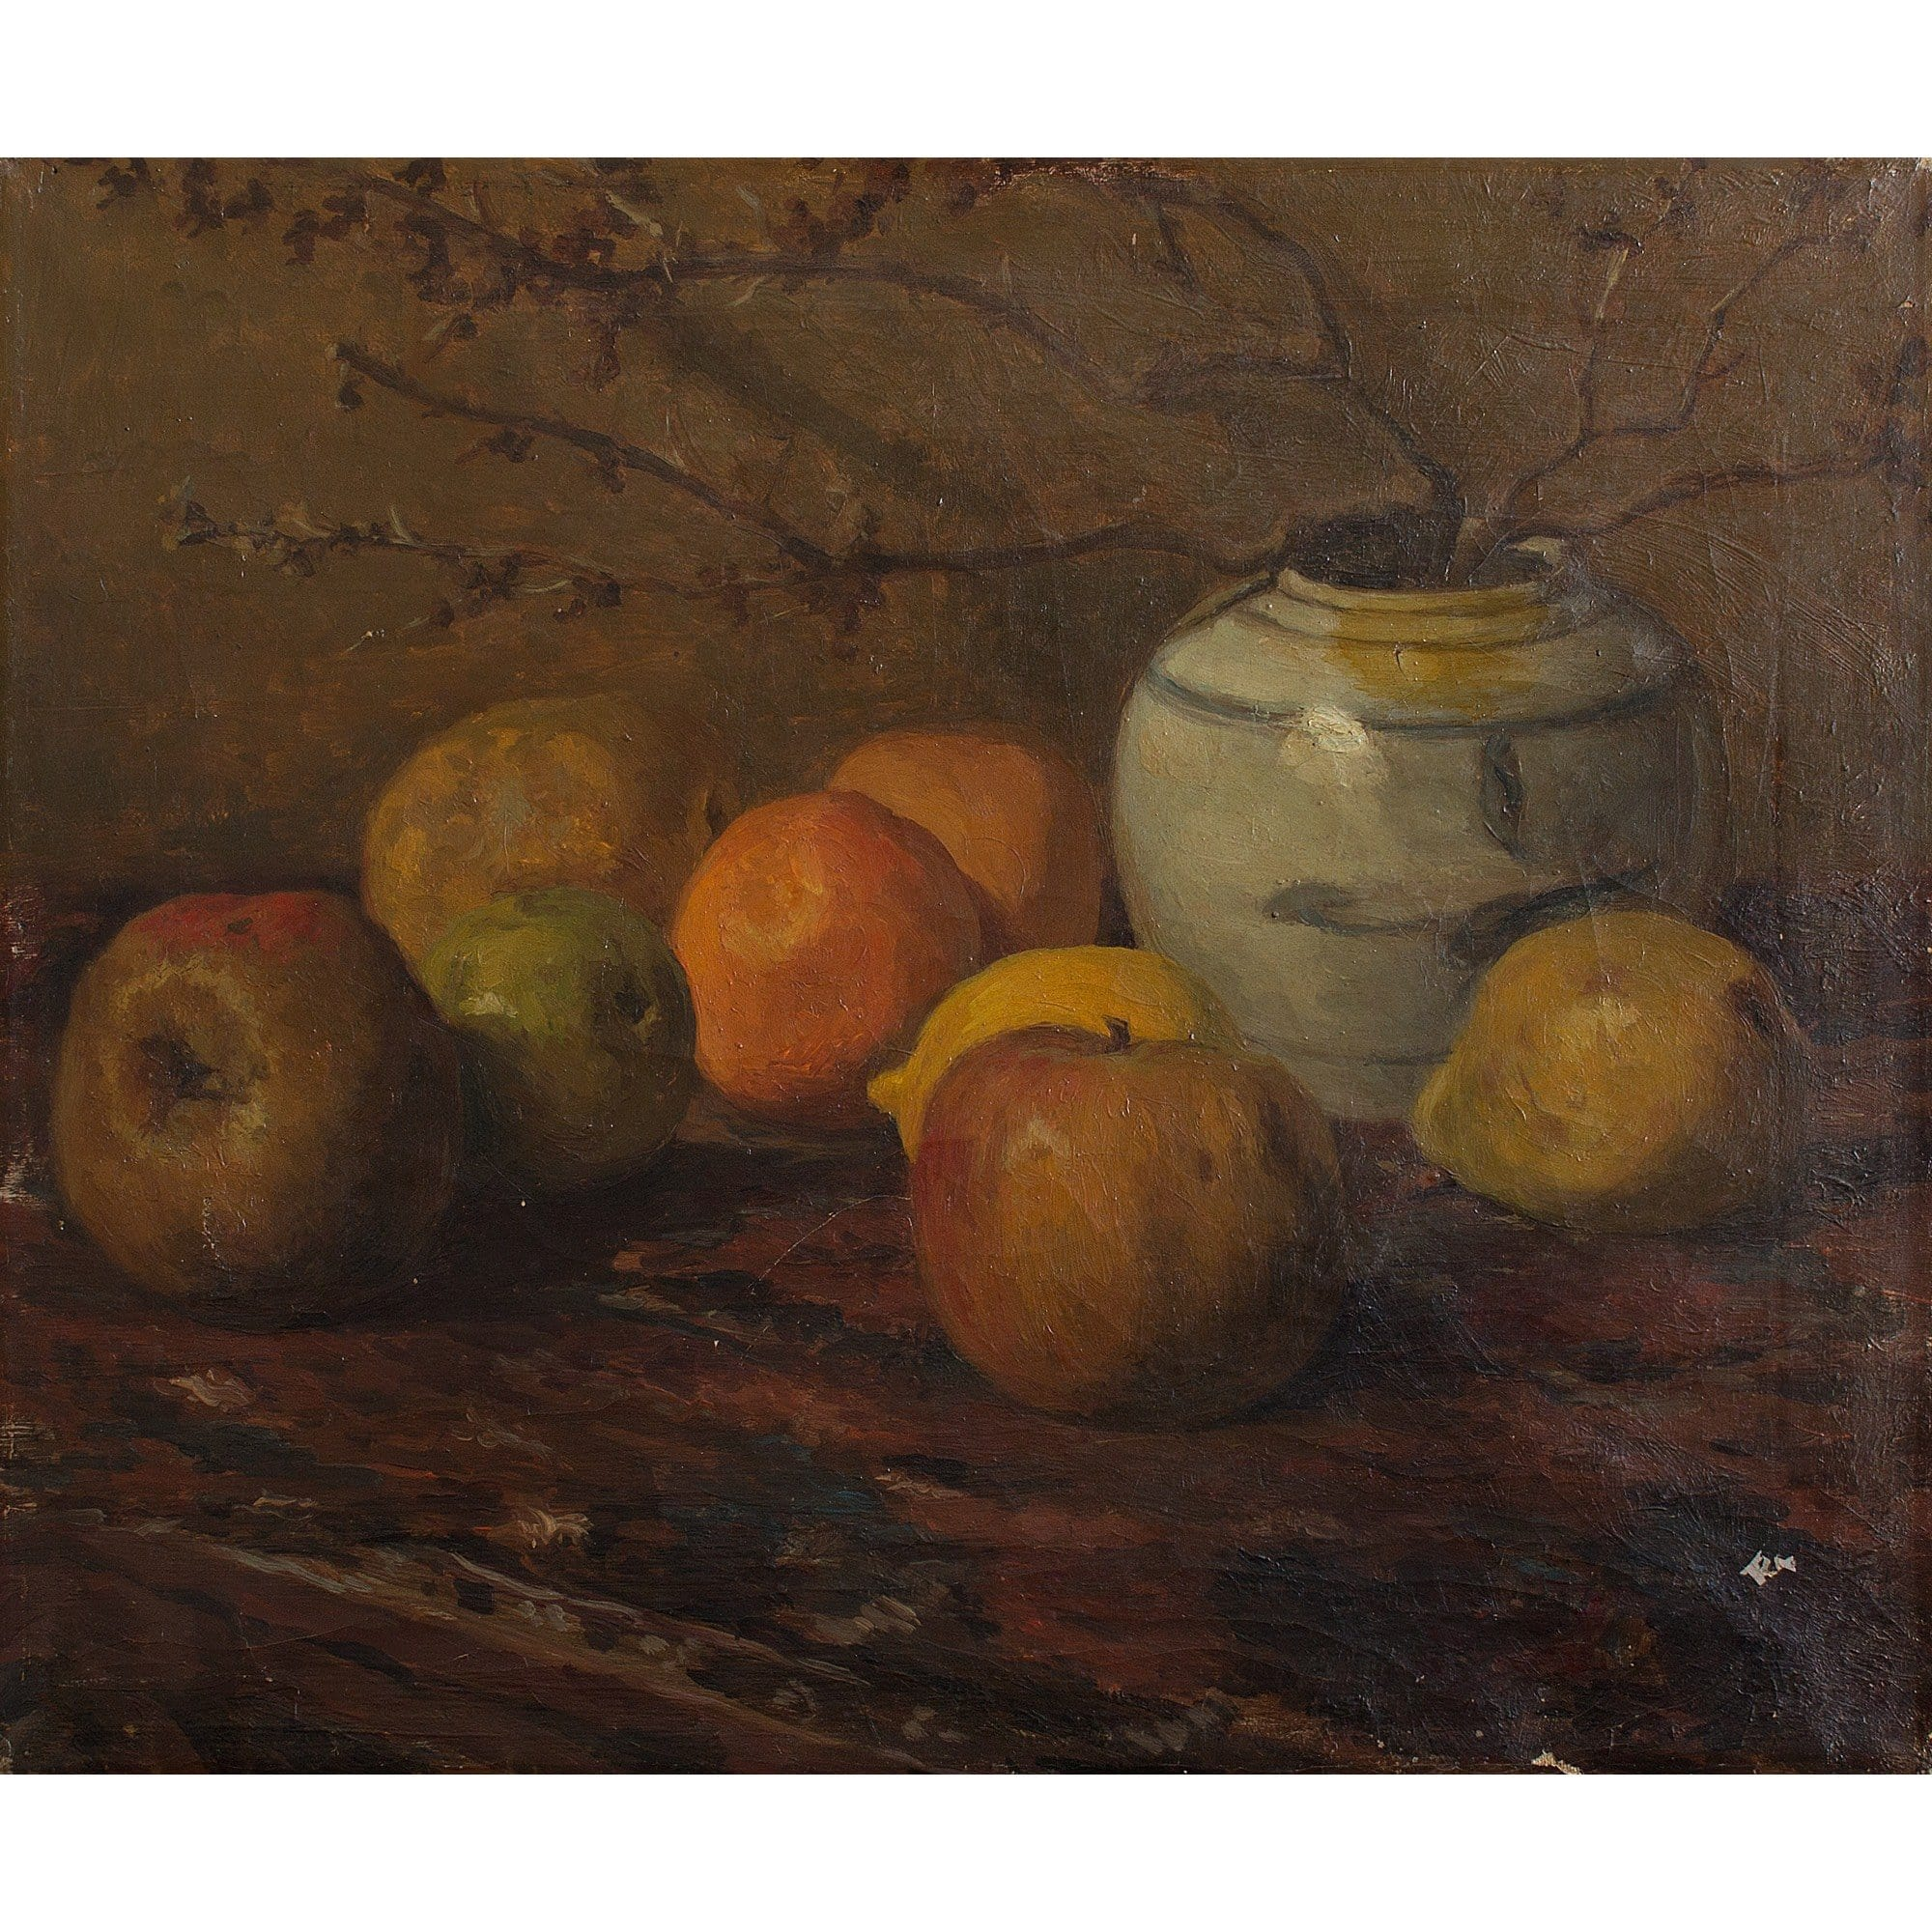 Dutch School Still Life With Vase, Apples, Oranges And Lemons - Original Framed Painting - Antique Art - Brave Fine Art